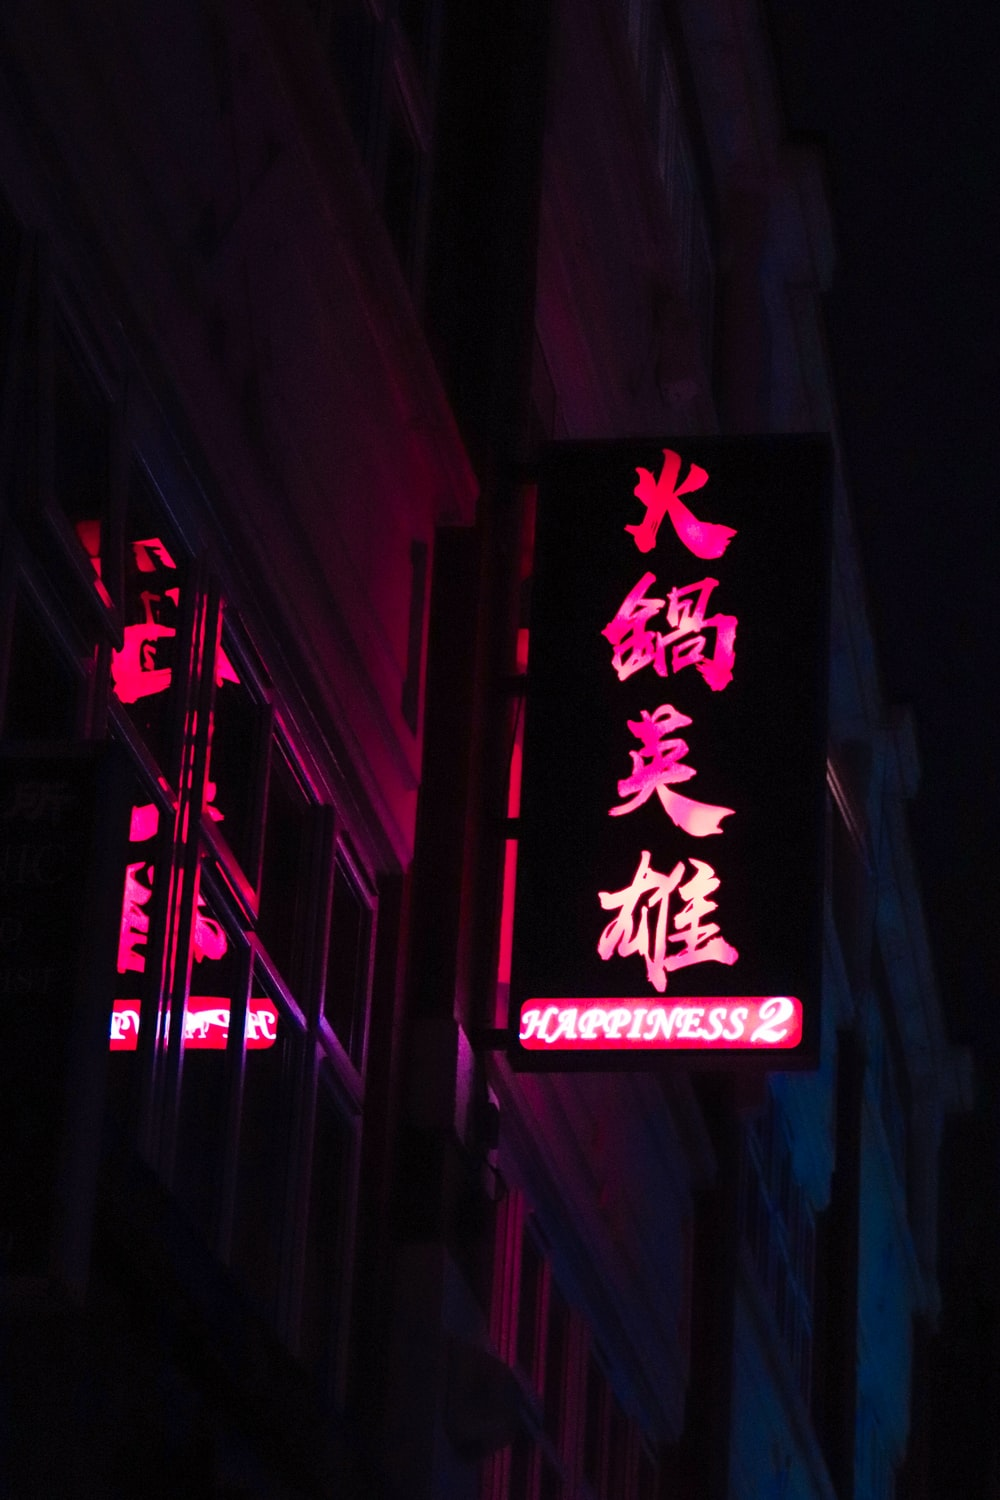 signage at night